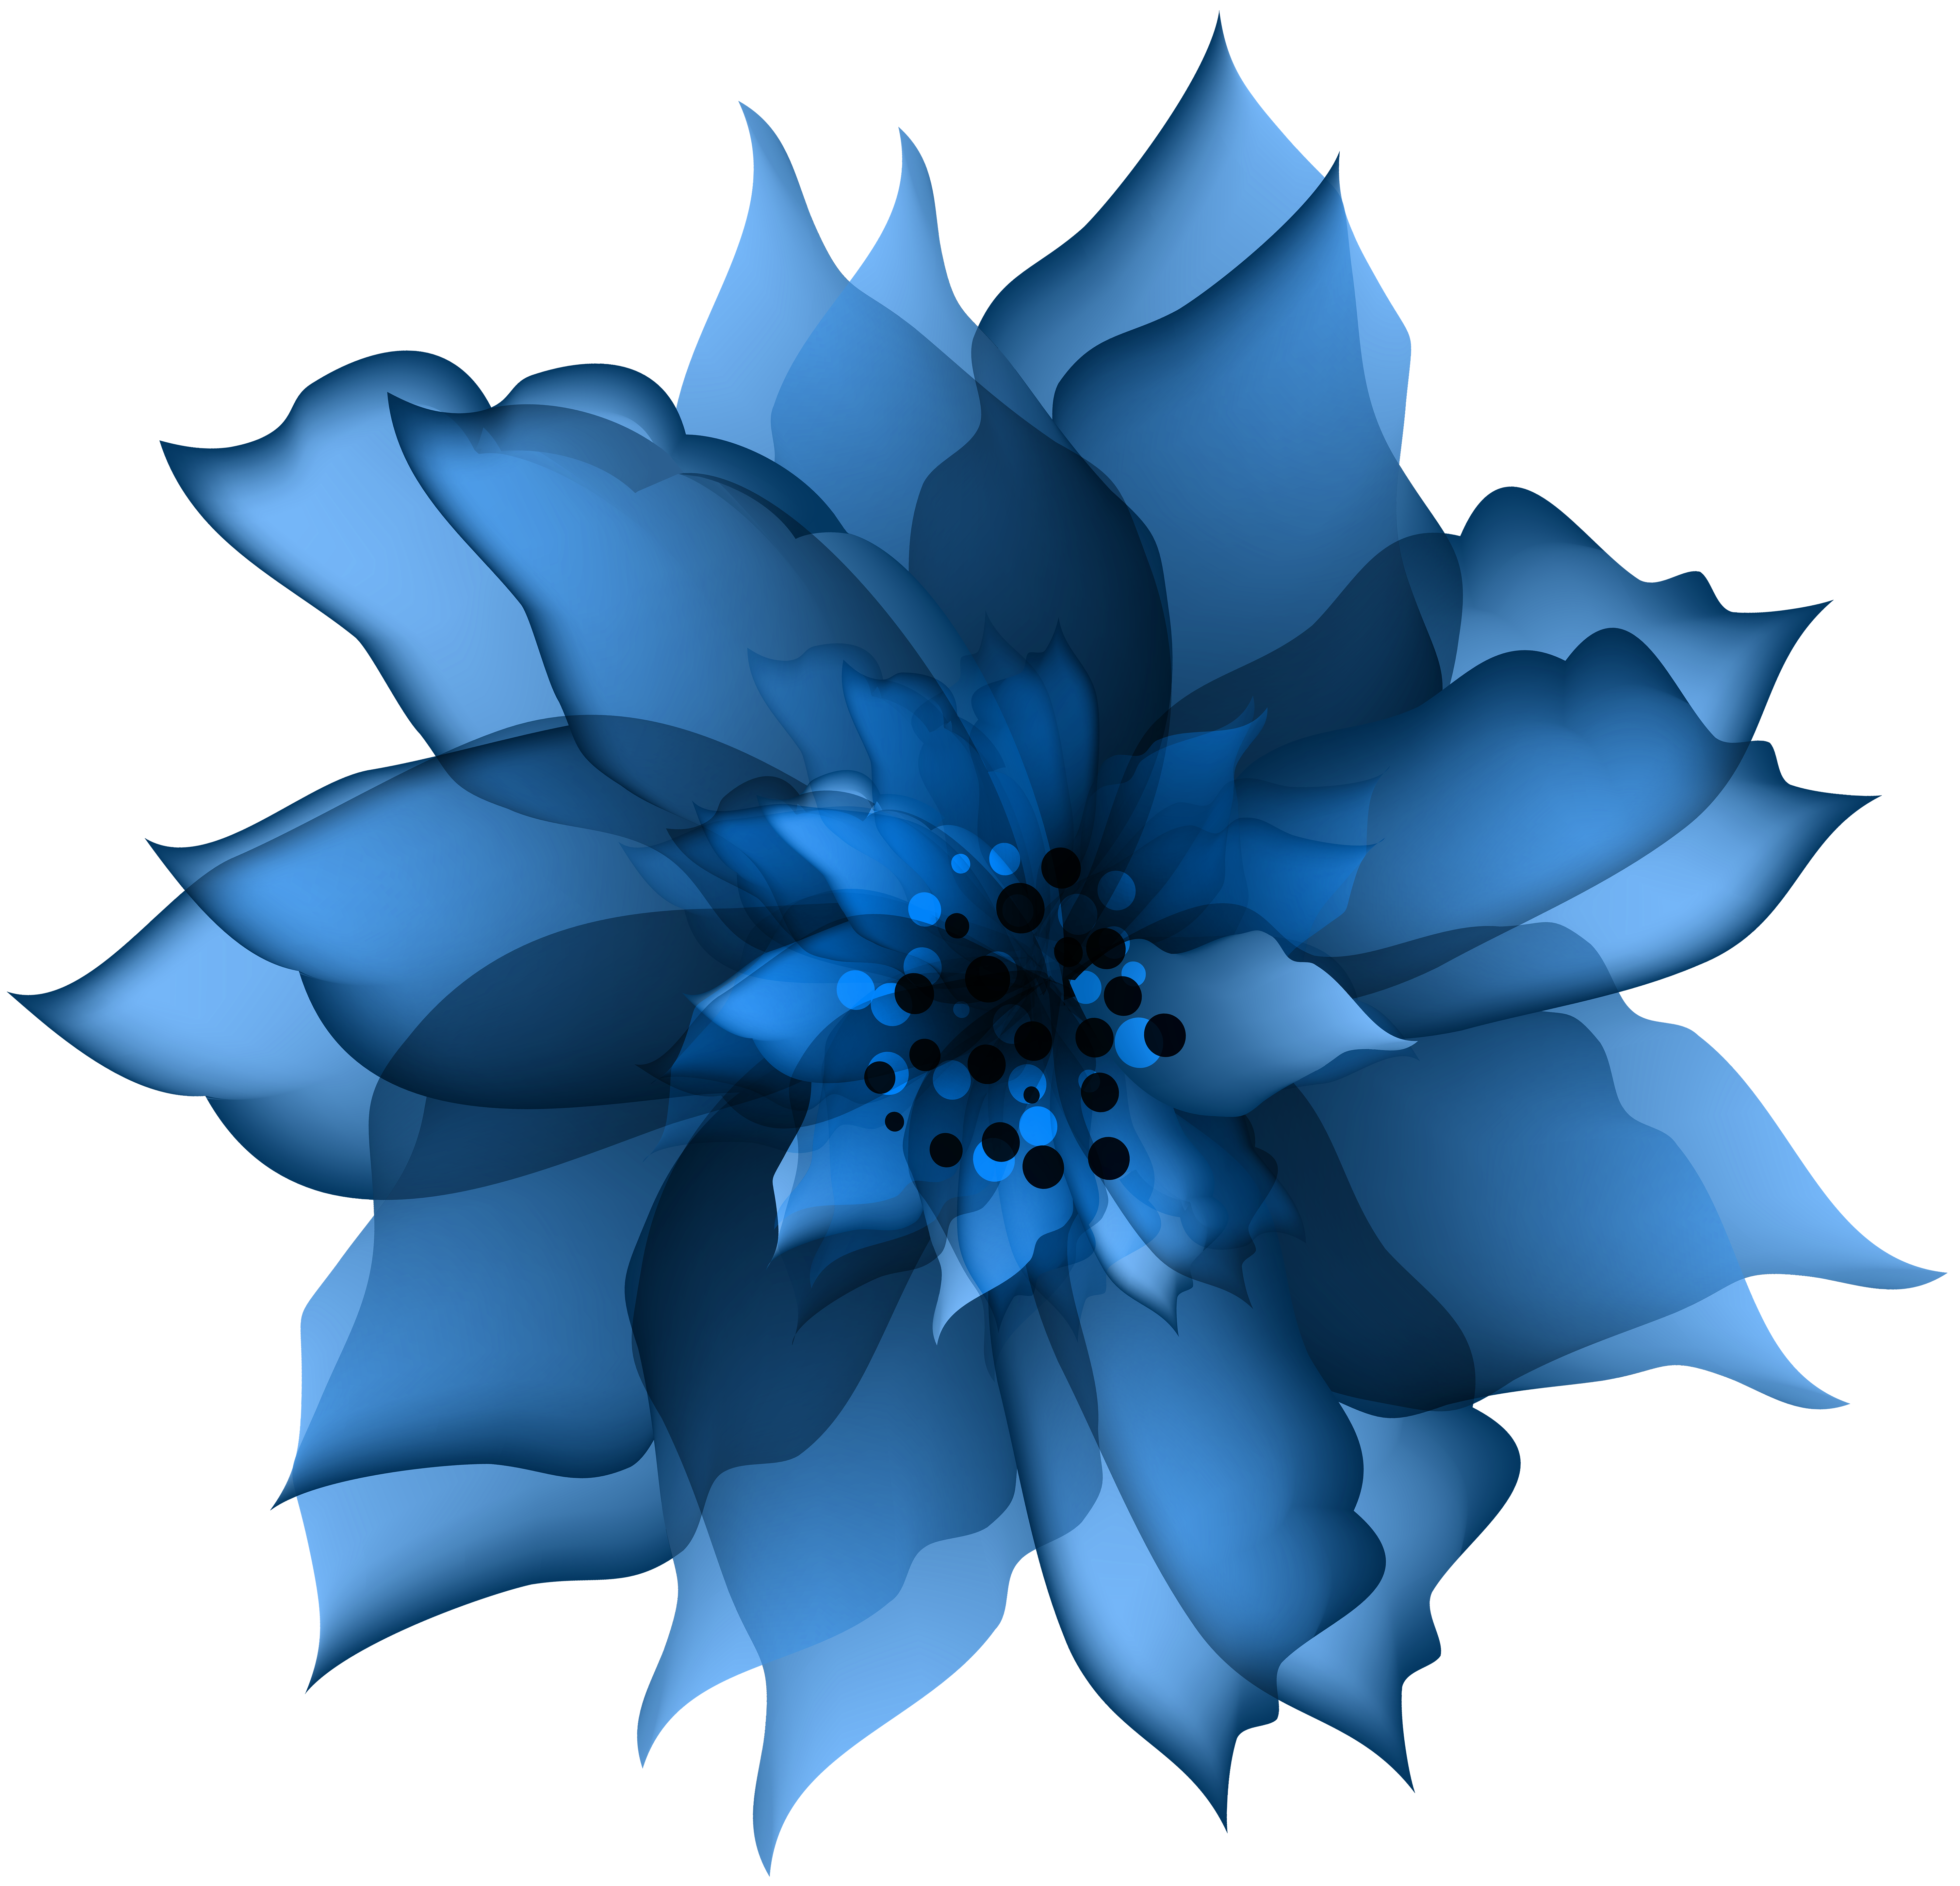 Decorative Flower Blue Transparent PNG Clip Art | Gallery ... graphic royalty free